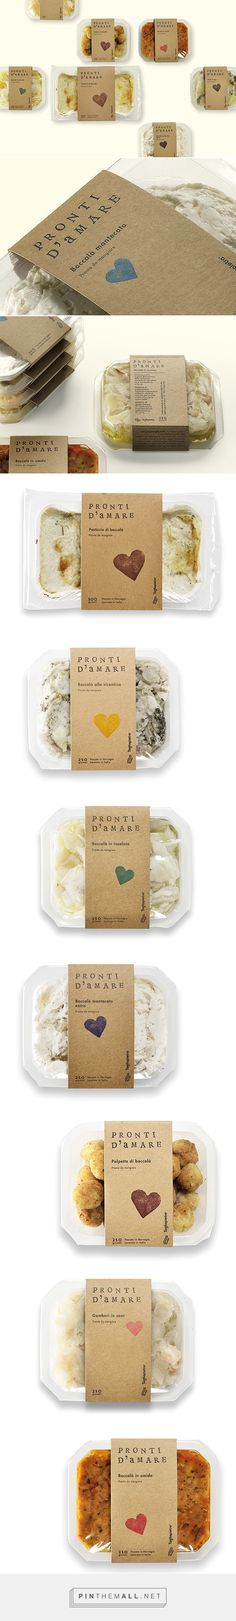 "Pronti D'Amare on Behance curated by Packaging Diva PD. ""Pronti d'amare"" in Italian means ""ready to love"", but sounds like ""ready from the sea"". Bakery Packaging, Food Packaging Design, Coffee Packaging, Bottle Packaging, Food Design, Design Ideas, Design Design, Graphic Design, Comida Delivery"